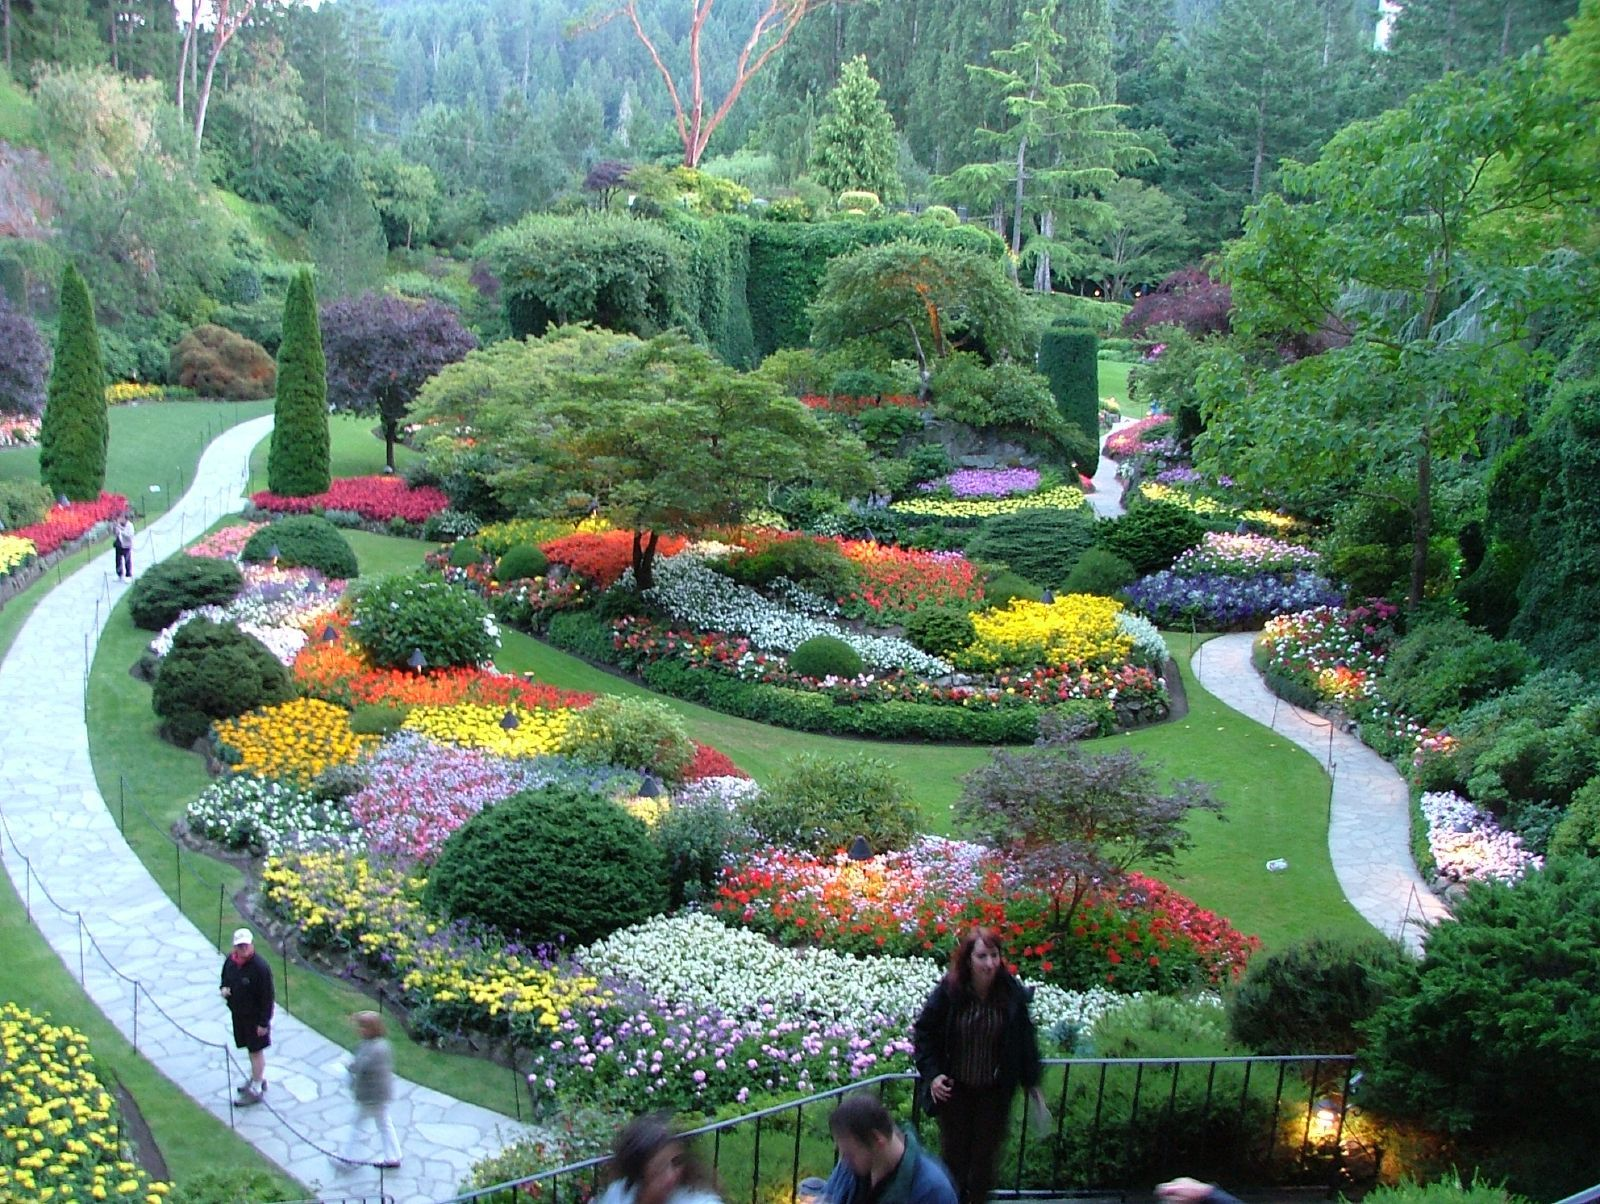 How To Get To Butchart Gardens From Downtown Victoria